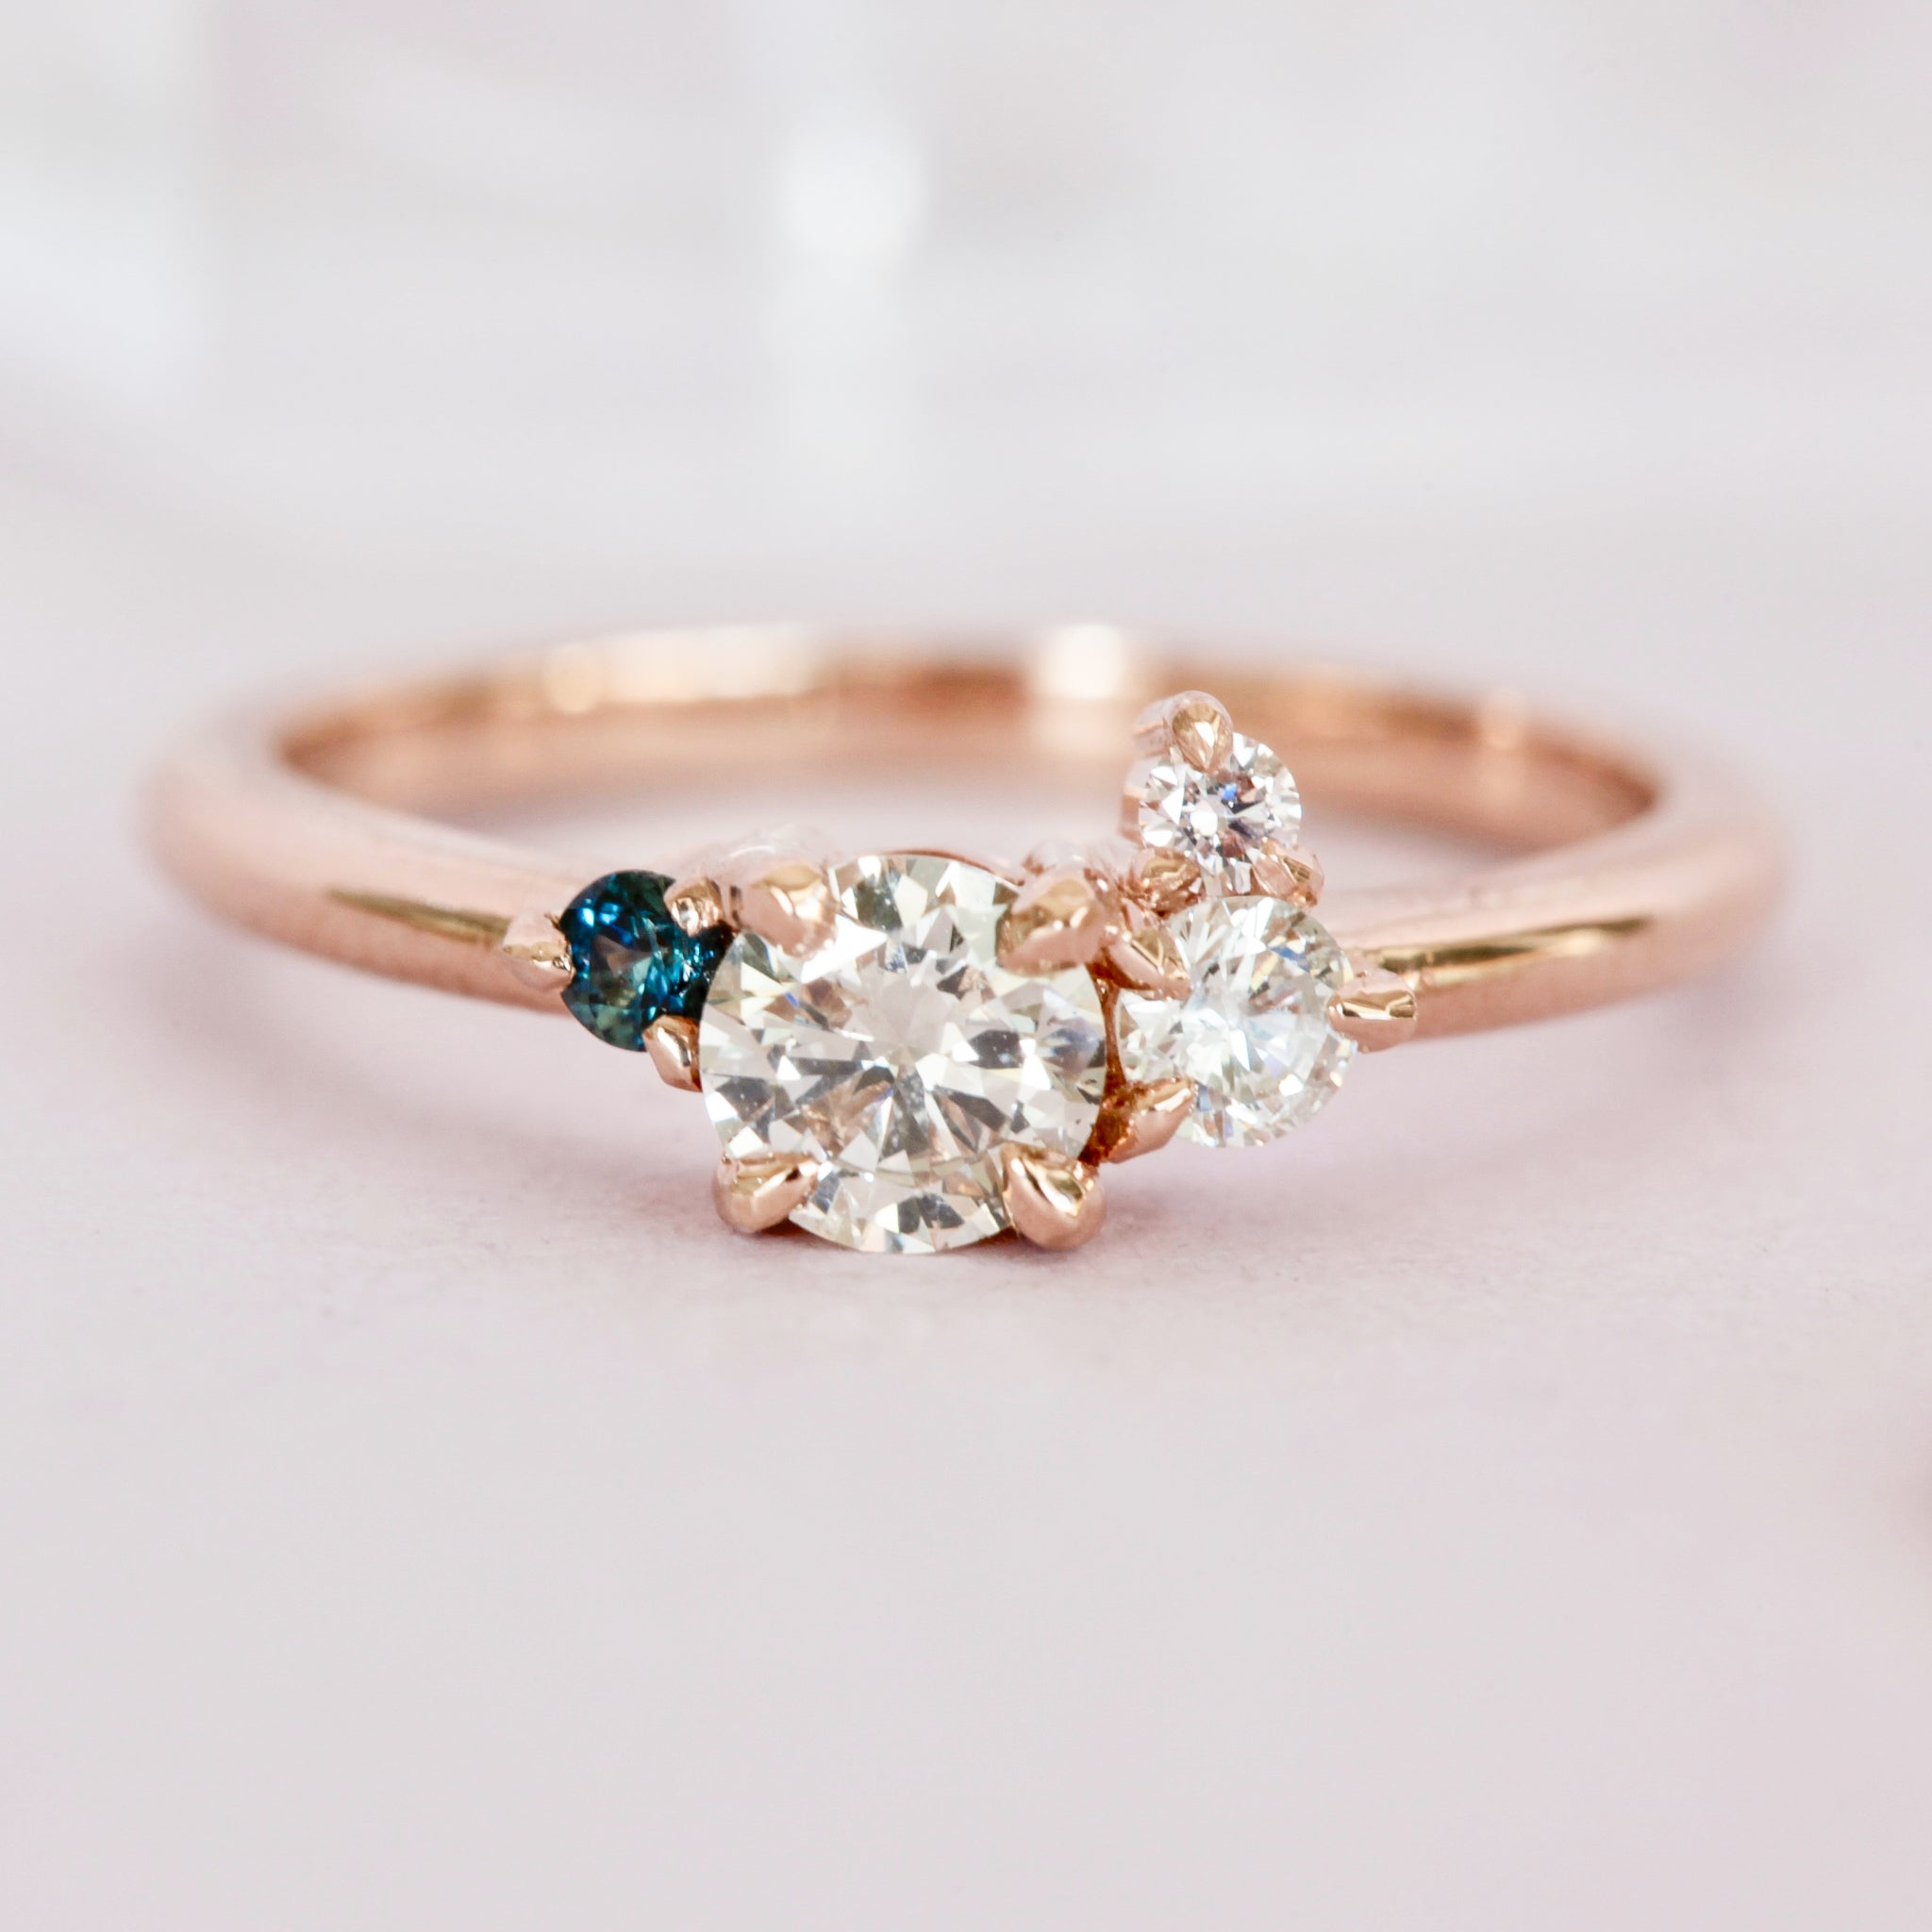 bespoke handmade engagement ring in 18ct rose gold, claw set ethically sourced Australian sapphire, large  white and champagne diamonds